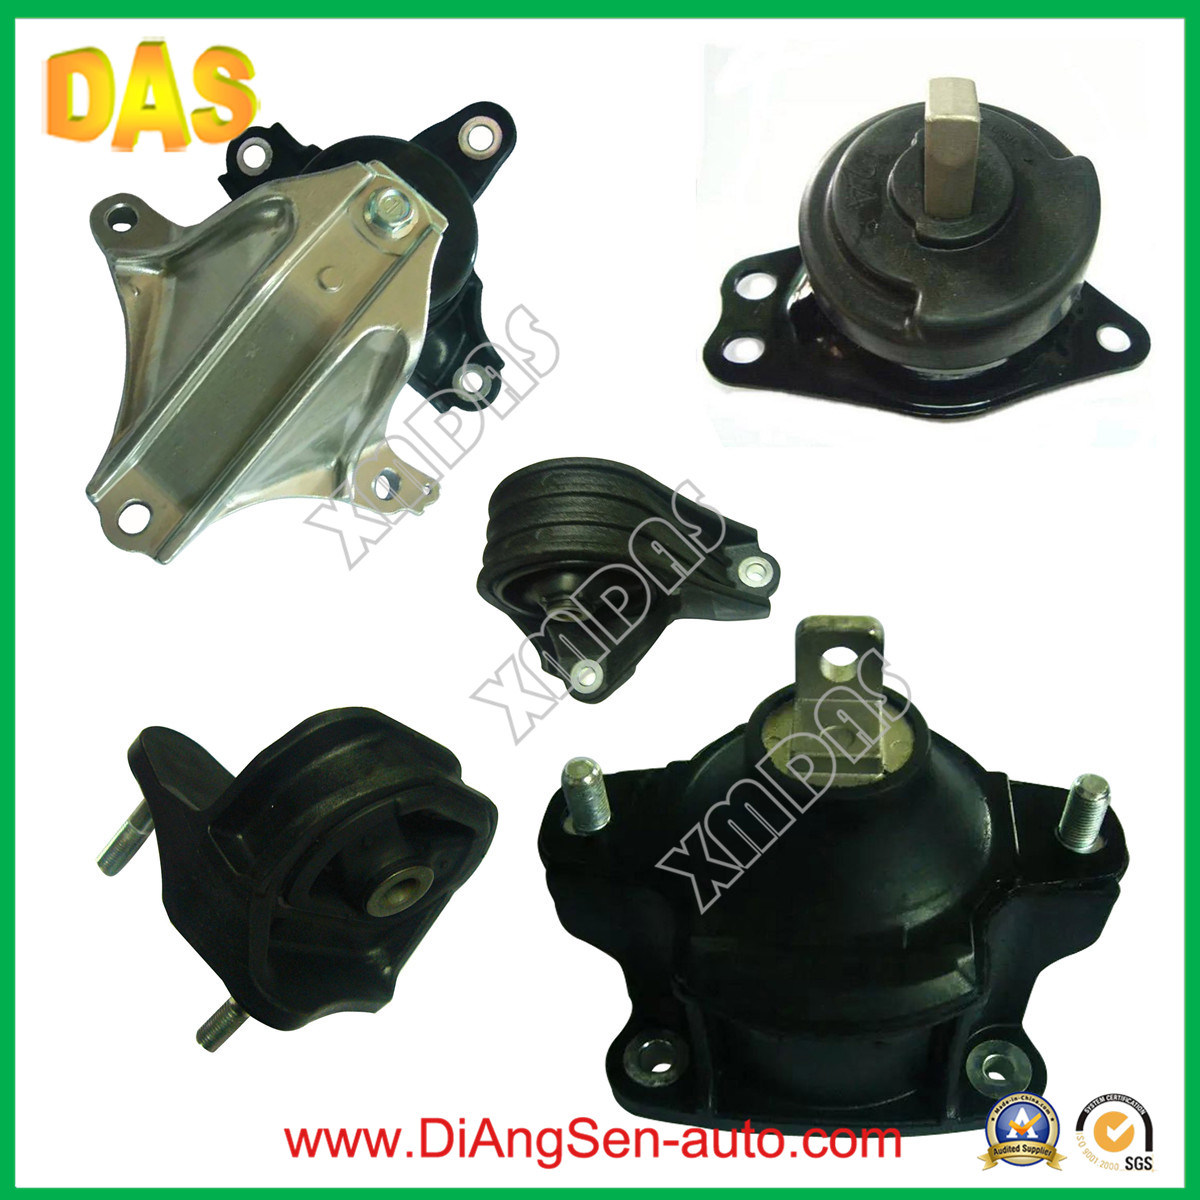 Auto/Car Spare Parts & Accessories for Honda Accord Engine Mounting